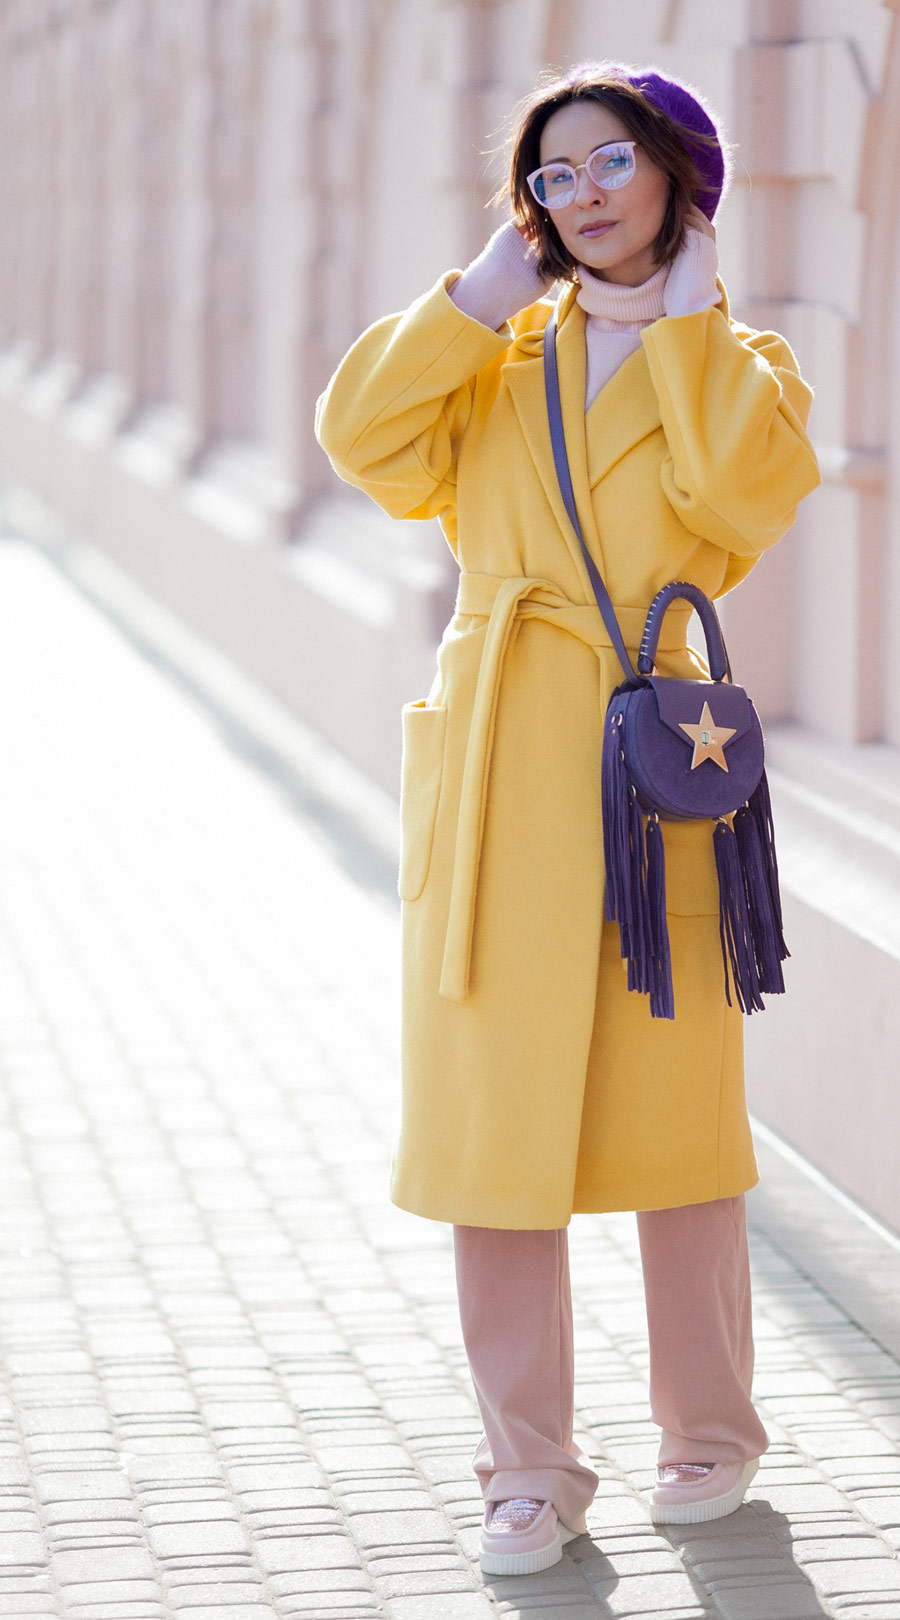 primrose yellow coat, salar bag, trending colors outfit ideas, yellow coat outfits, colorblock winter styles,